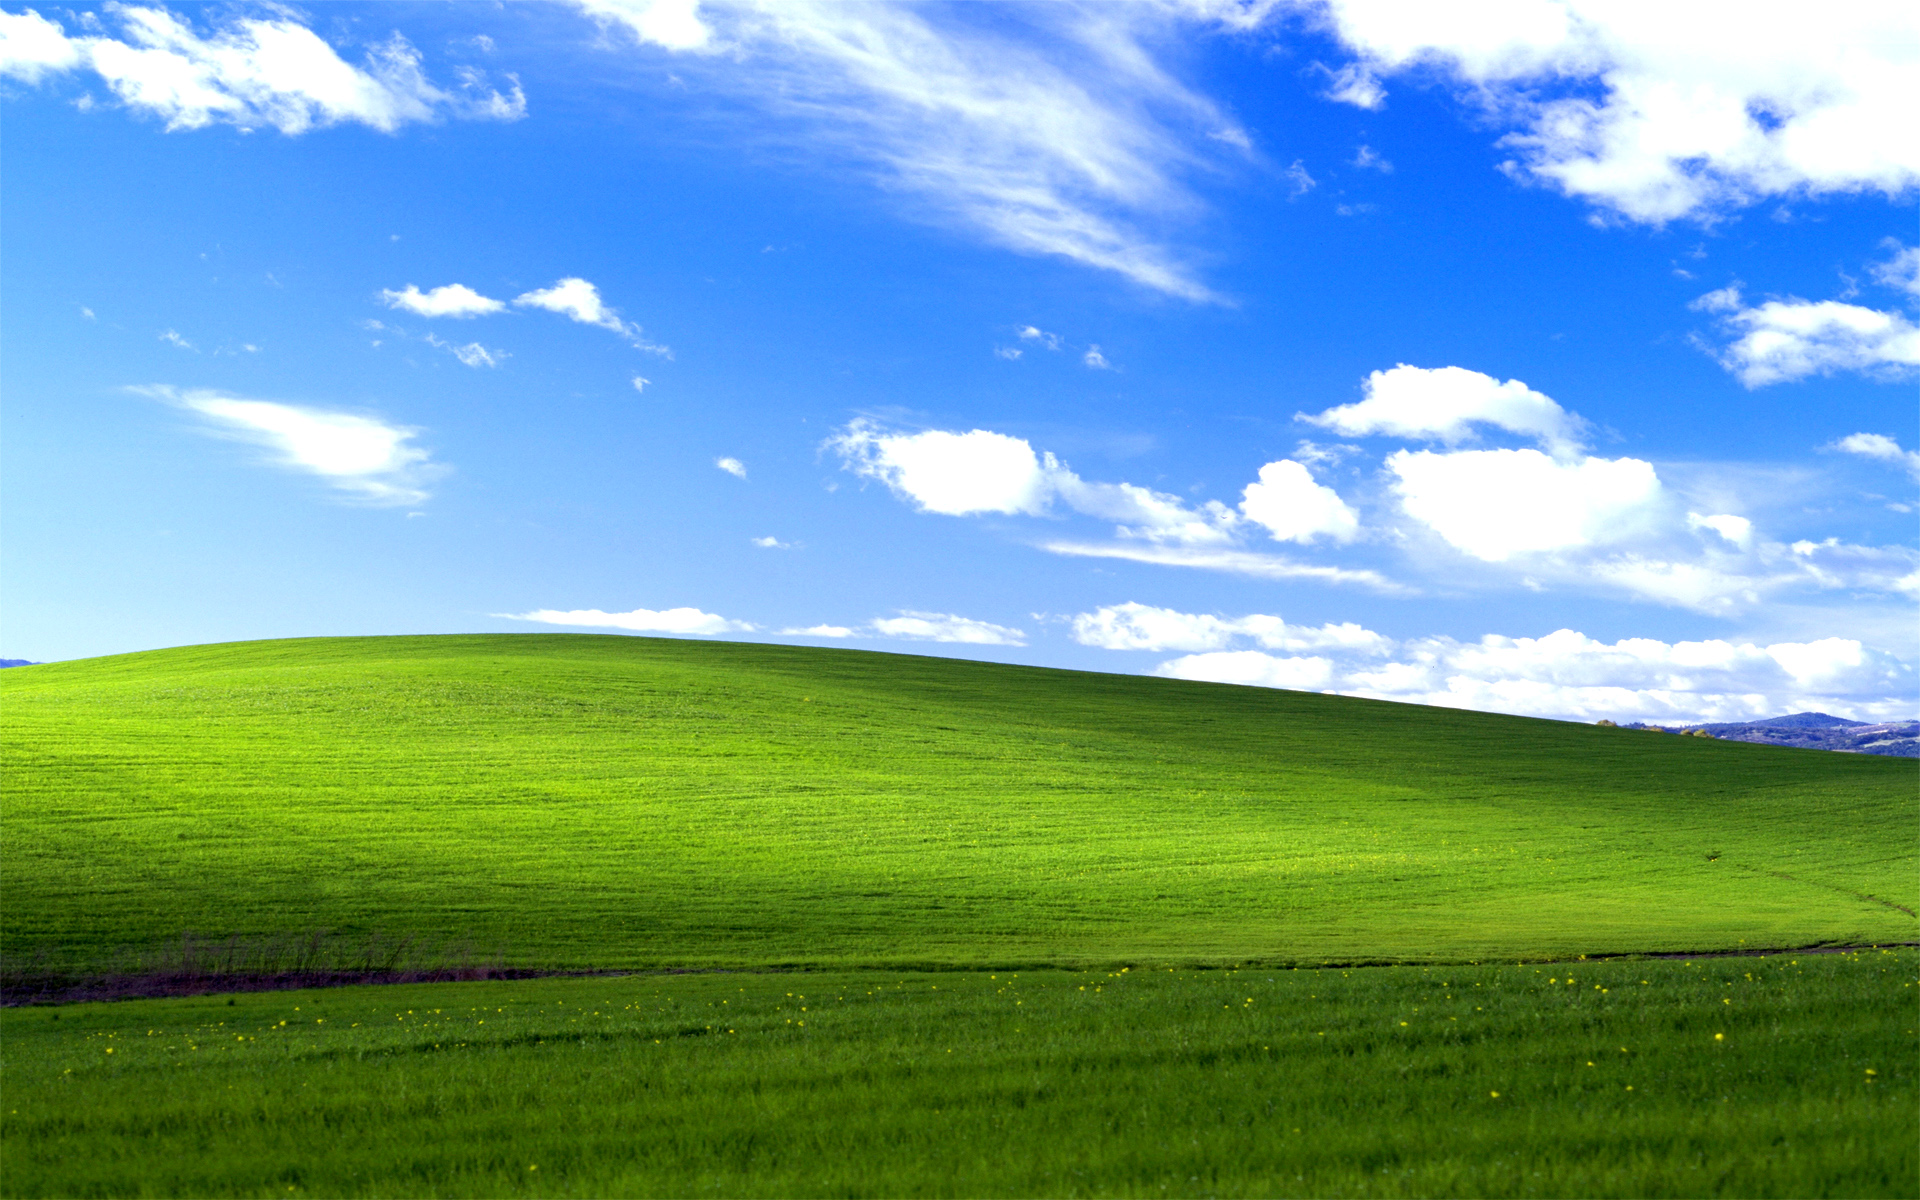 Wallpaper HD For Windows Xp